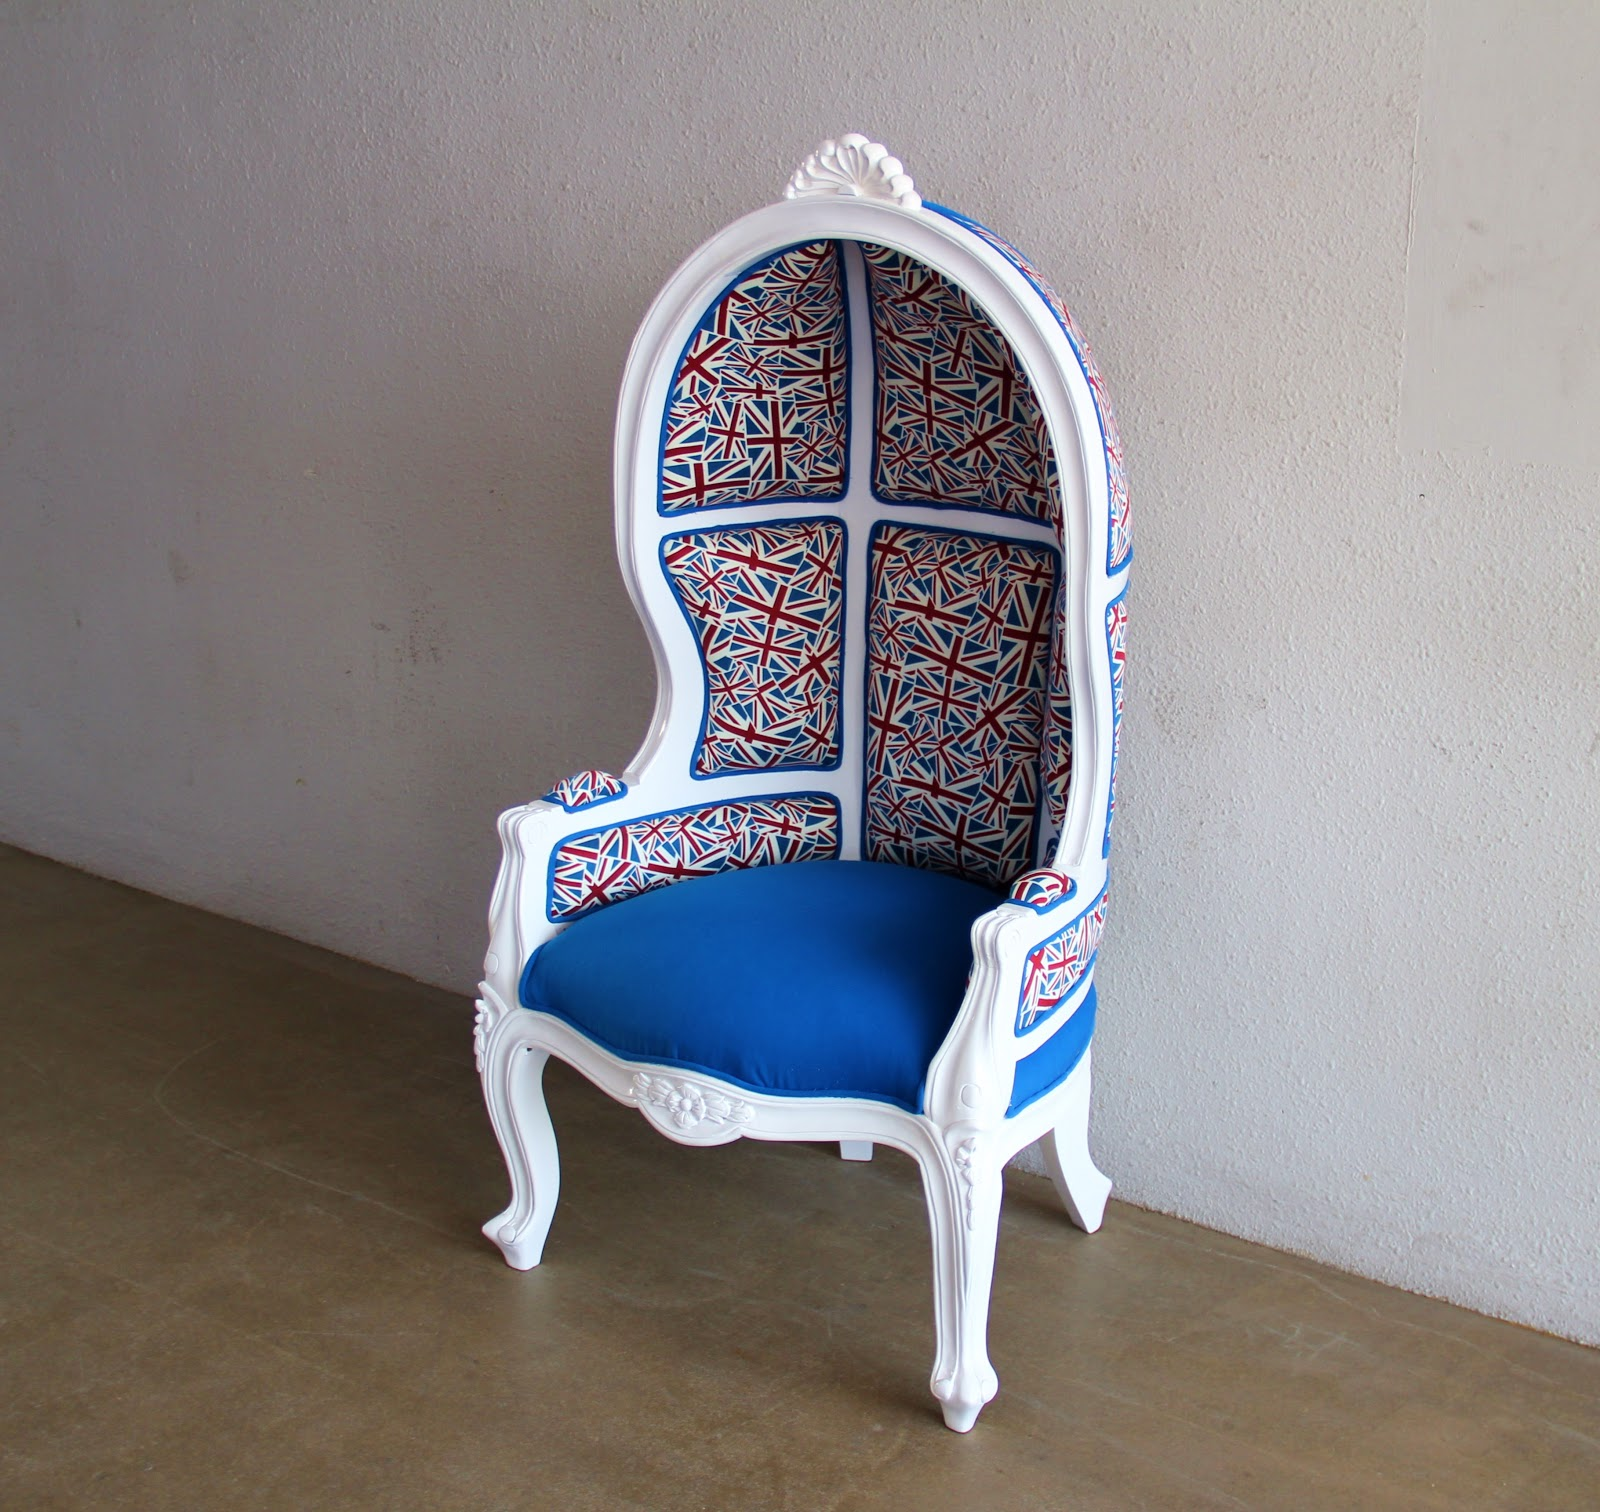 Canopy French Chair That We Reupholster In British Flag. Medium Size Great